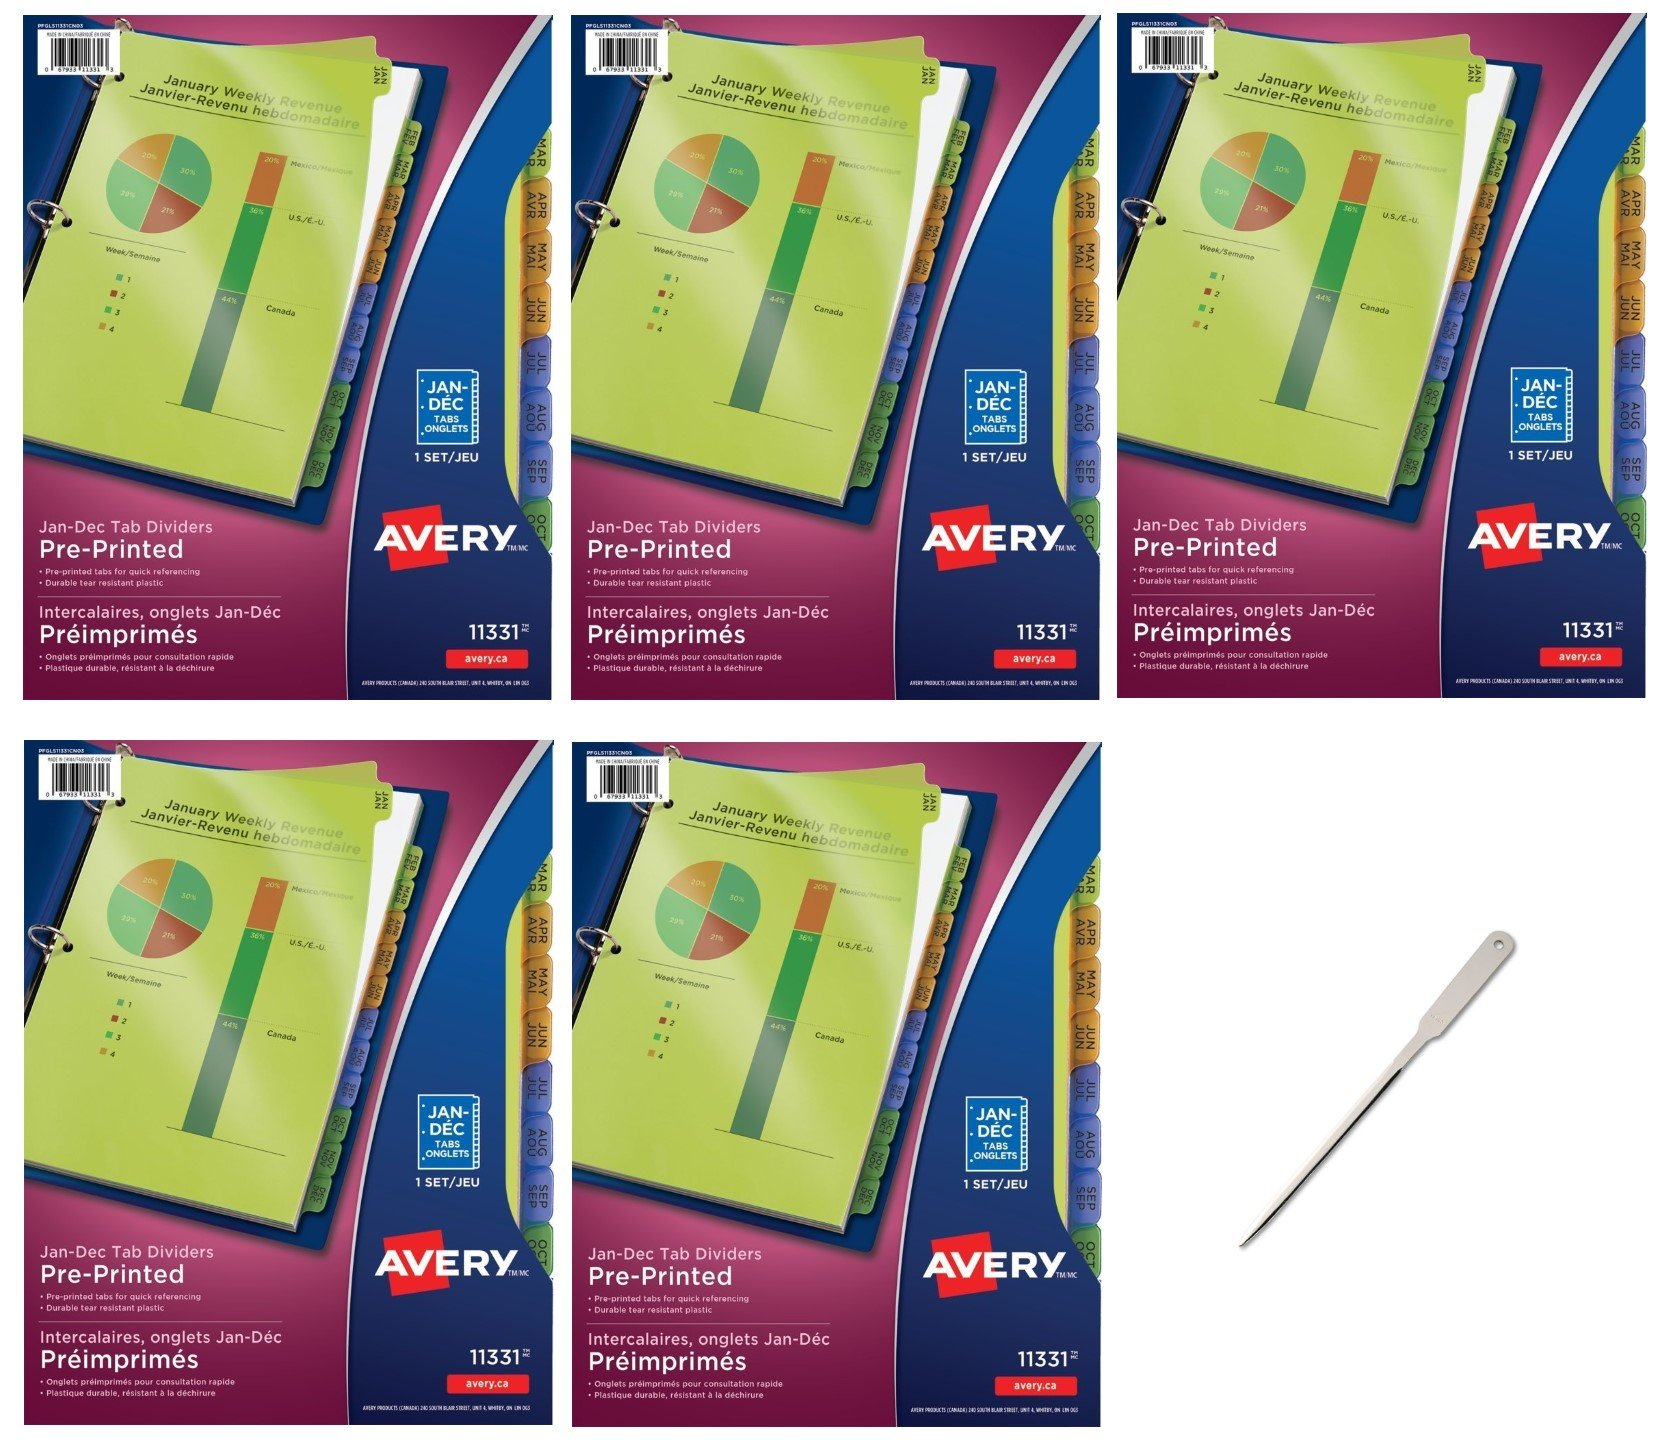 Avery Plastic Preprinted Tab Dividers Bundle, 8.5 x 11 inch, Jan-Dec Tab, Multi-Color Tab, 5 Packs (11331) - Bundle Includes a Letter Opener by Avery (Image #1)